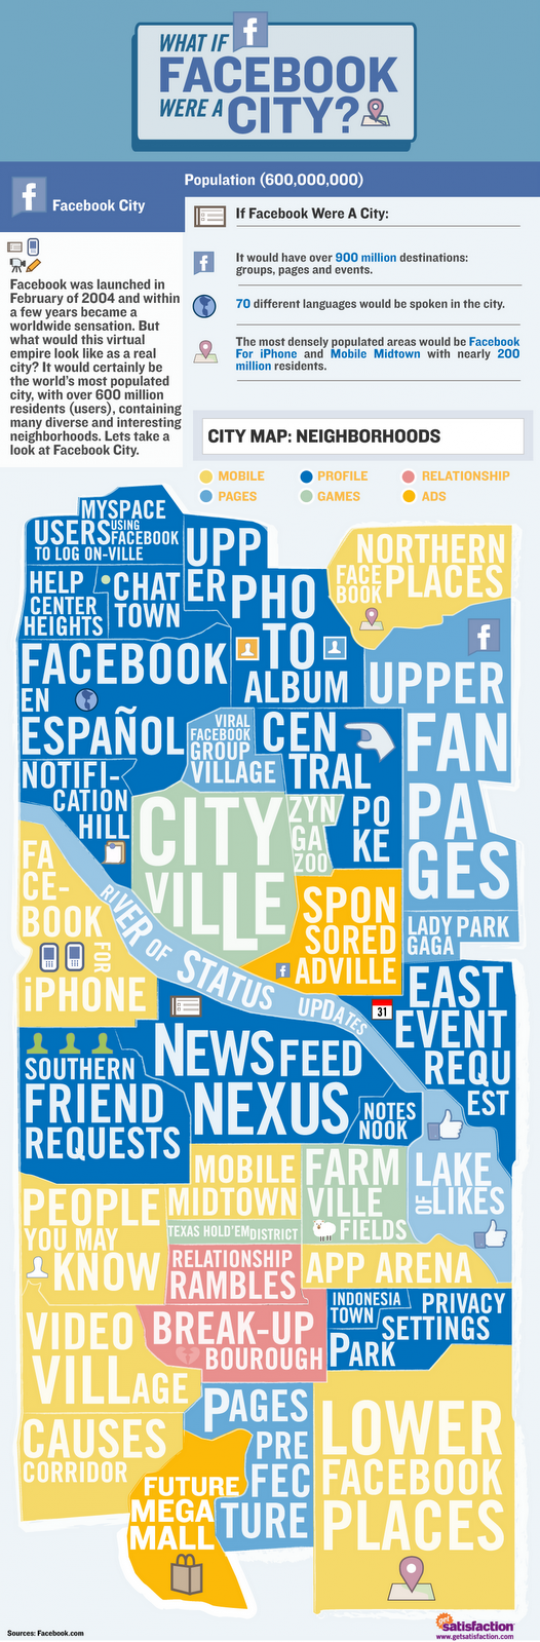 What If Facebook Were a City?